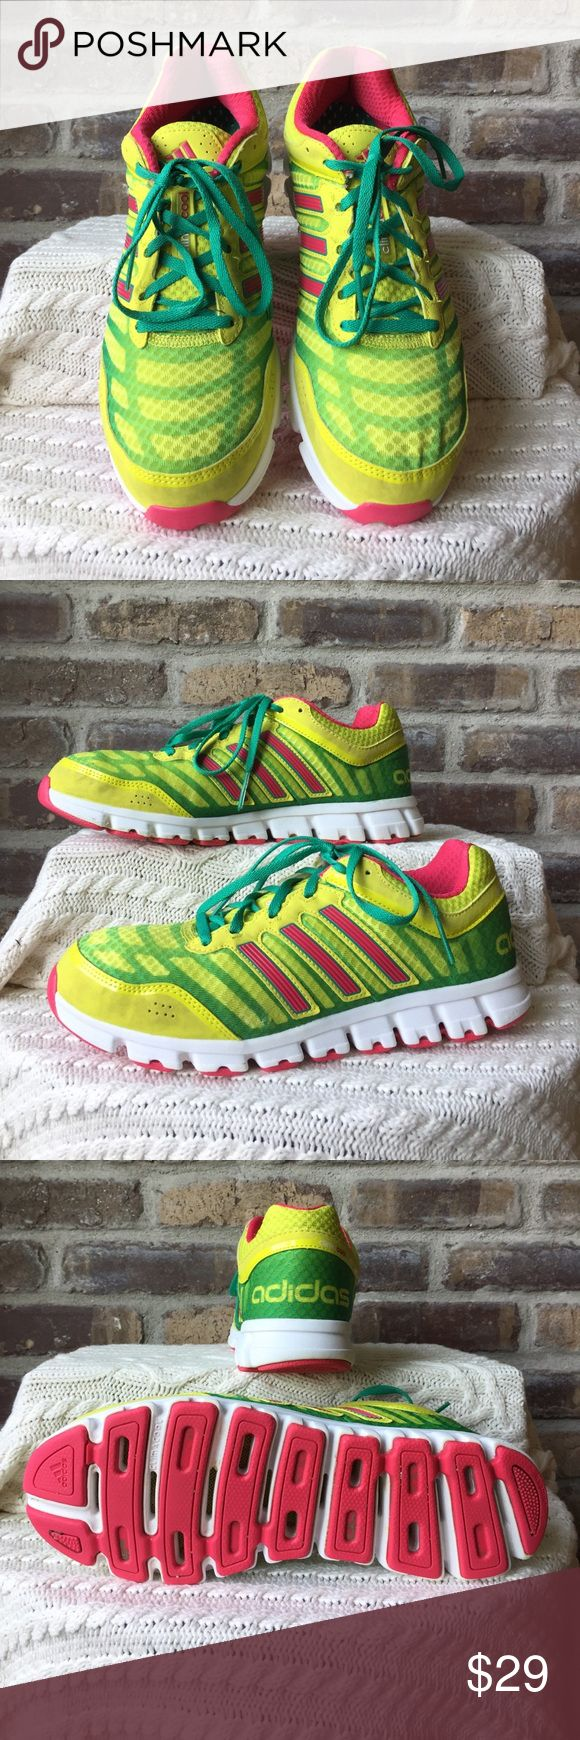 Adidas Climacool Women's size 9 Adidas Climacool running shoes. They have been worn. adidas Shoes Athletic Shoes